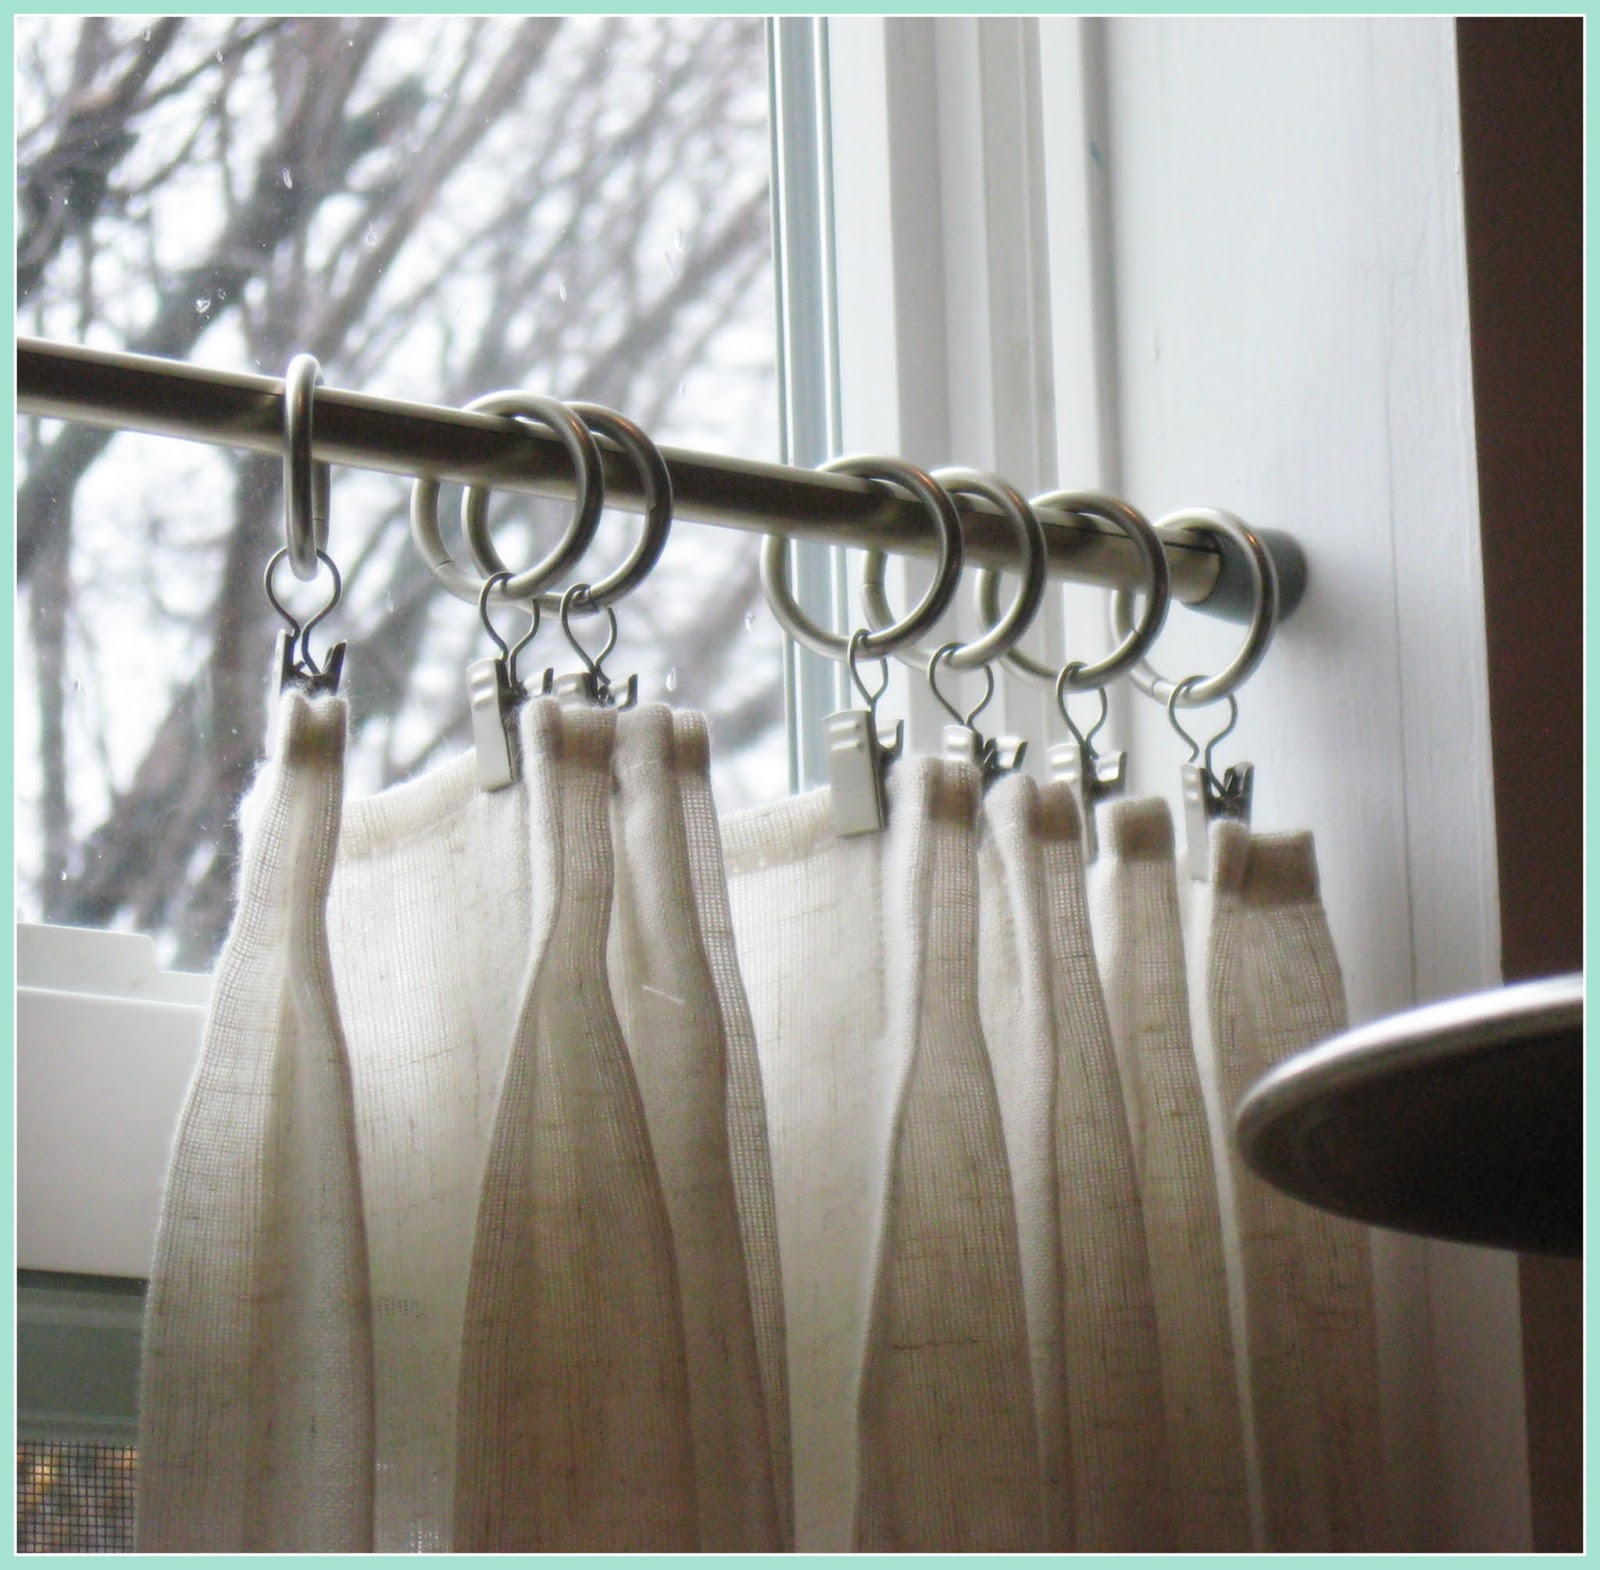 i wanted to share the new caf curtains i made for the window over the sink - Kitchen Cafe Curtains